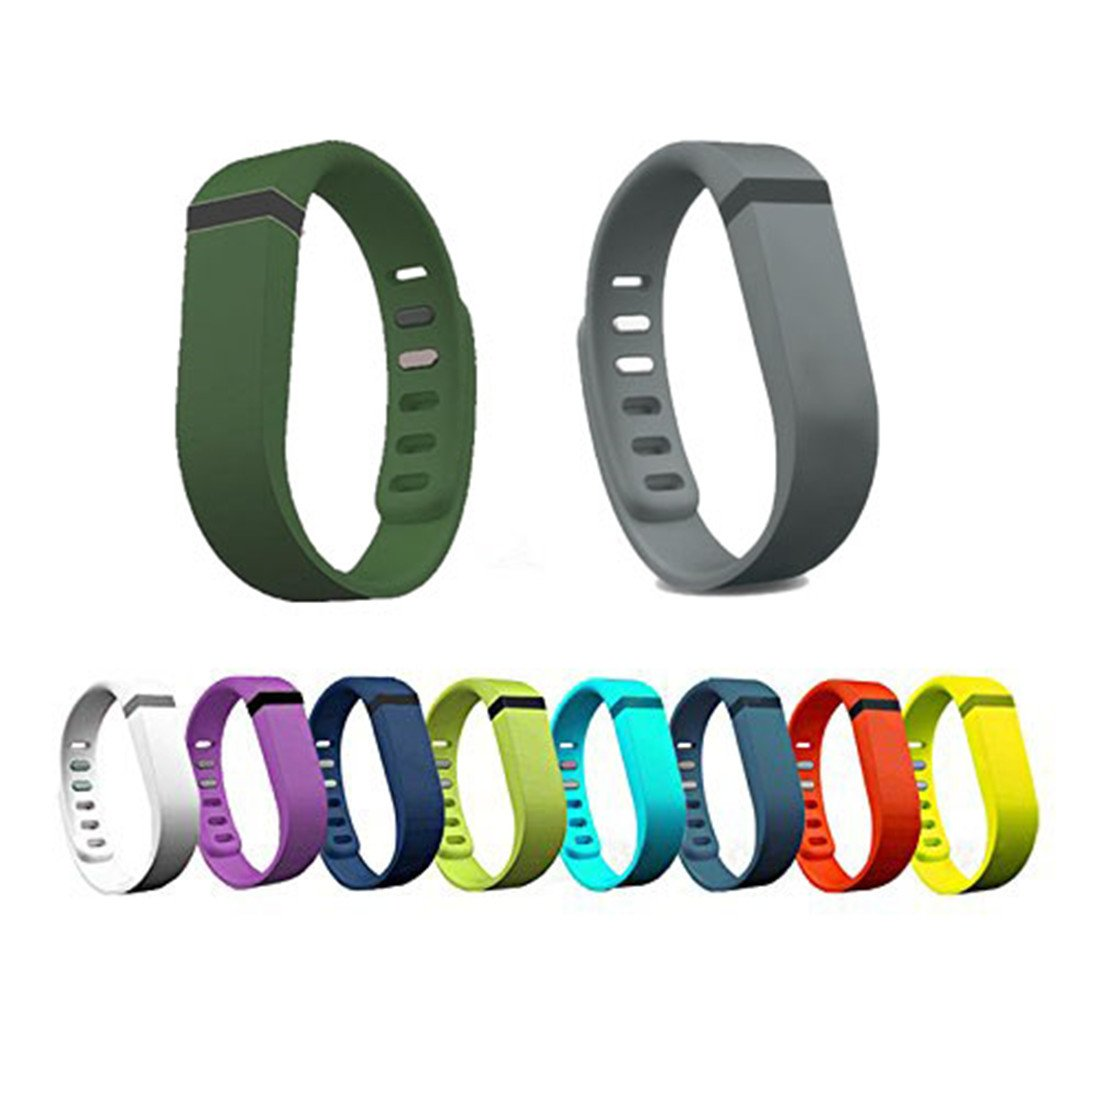 Zover Set Large L Replacement Bands with Clasps for Fitbit FLEX at Amazon.com